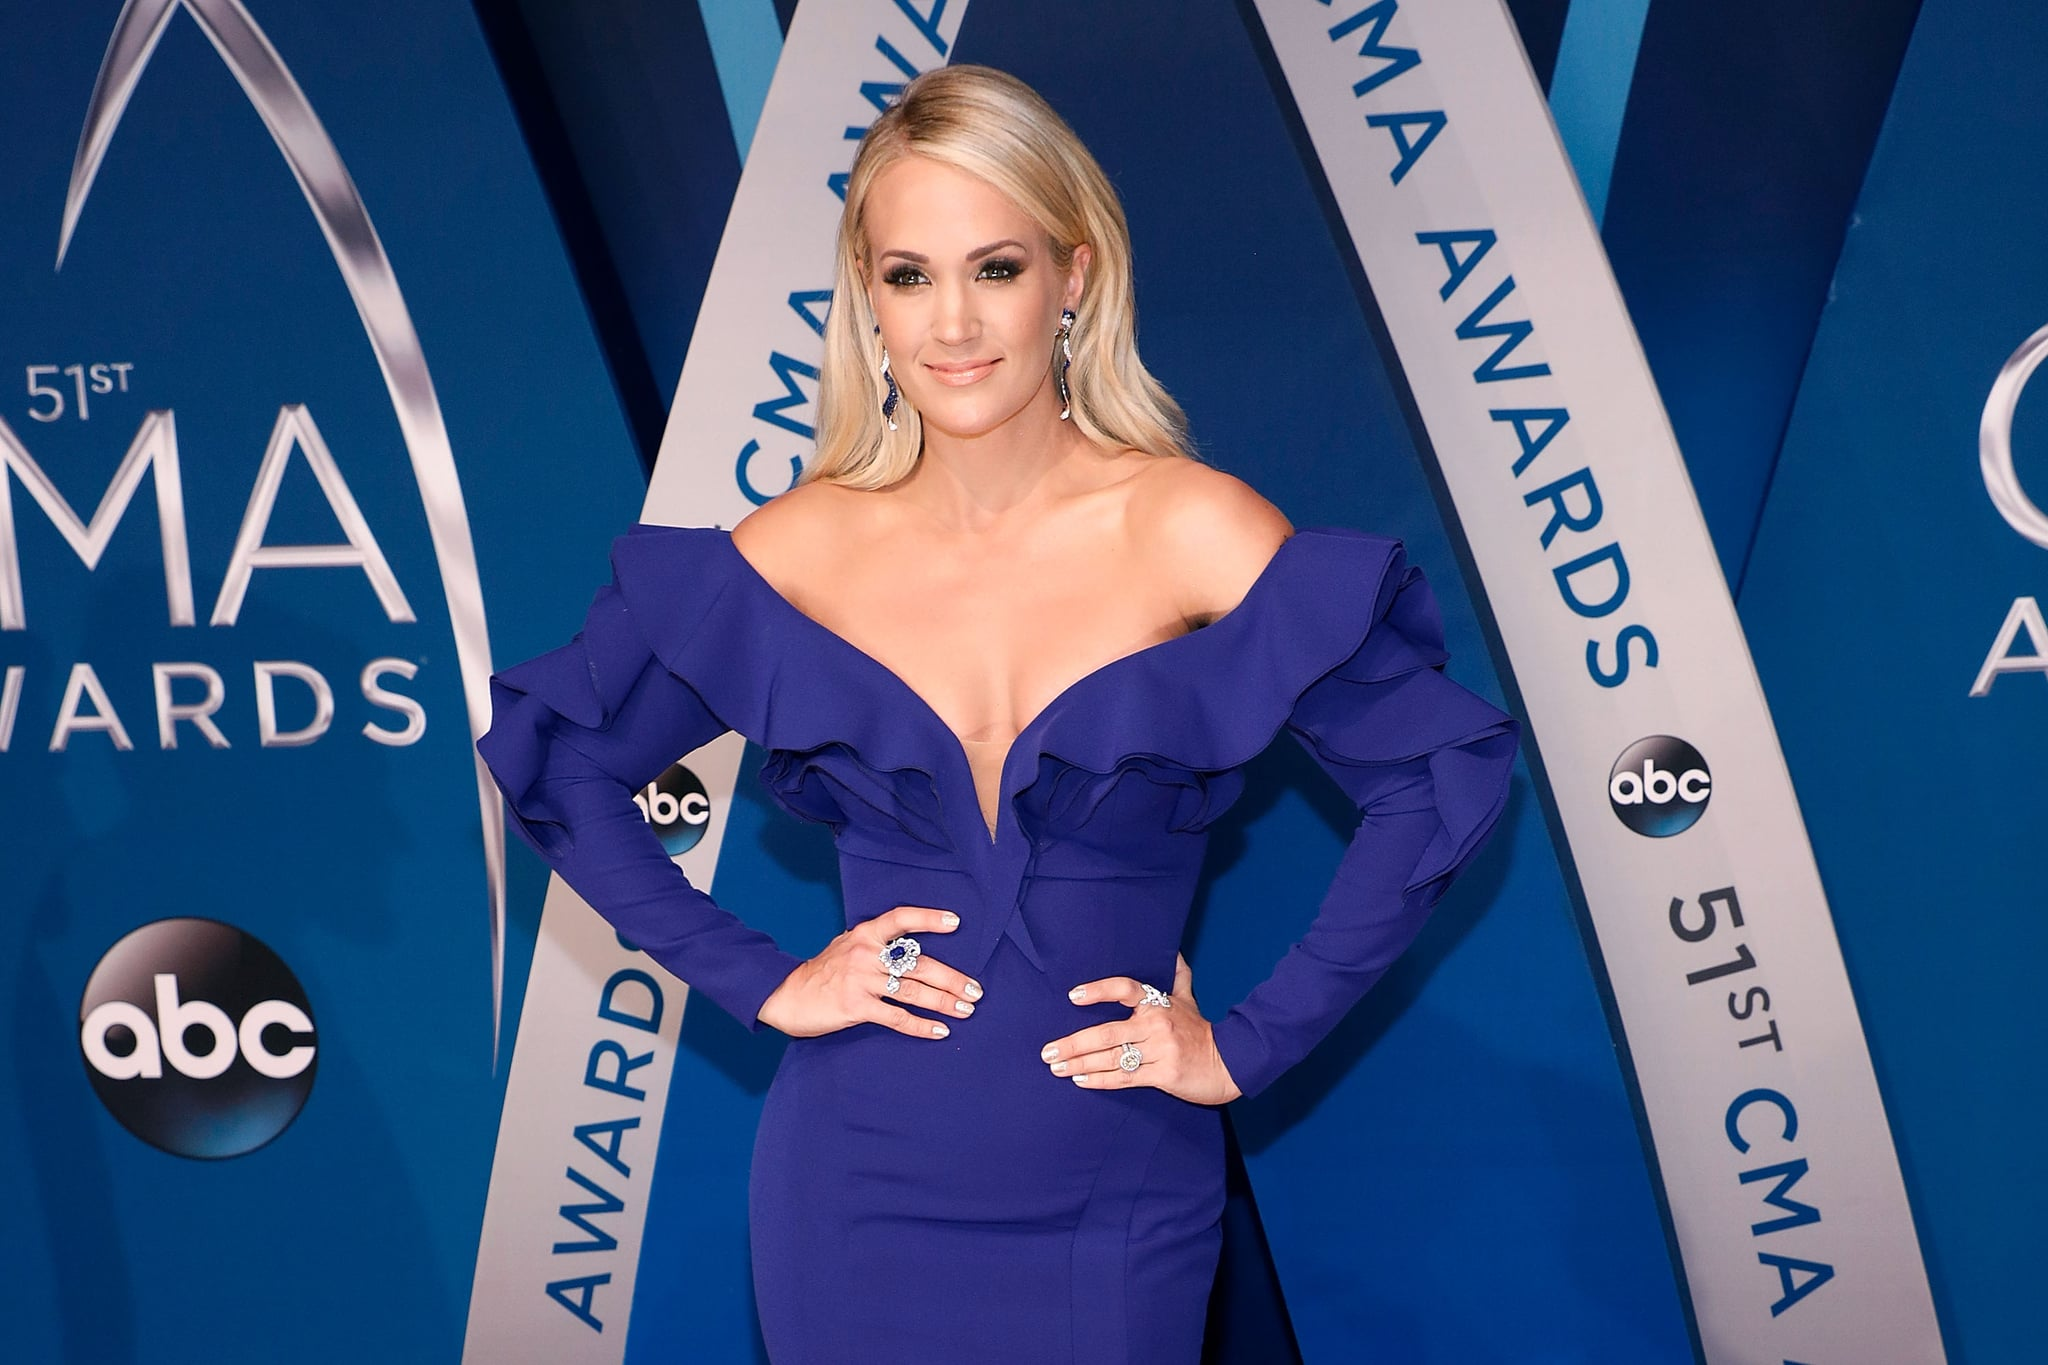 NASHVILLE, TN - NOVEMBER 08:  Carrie Underwood attends the 51st annual CMA Awards at the Bridgestone Arena on November 8, 2017 in Nashville, Tennessee.  (Photo by Taylor Hill/FilmMagic)